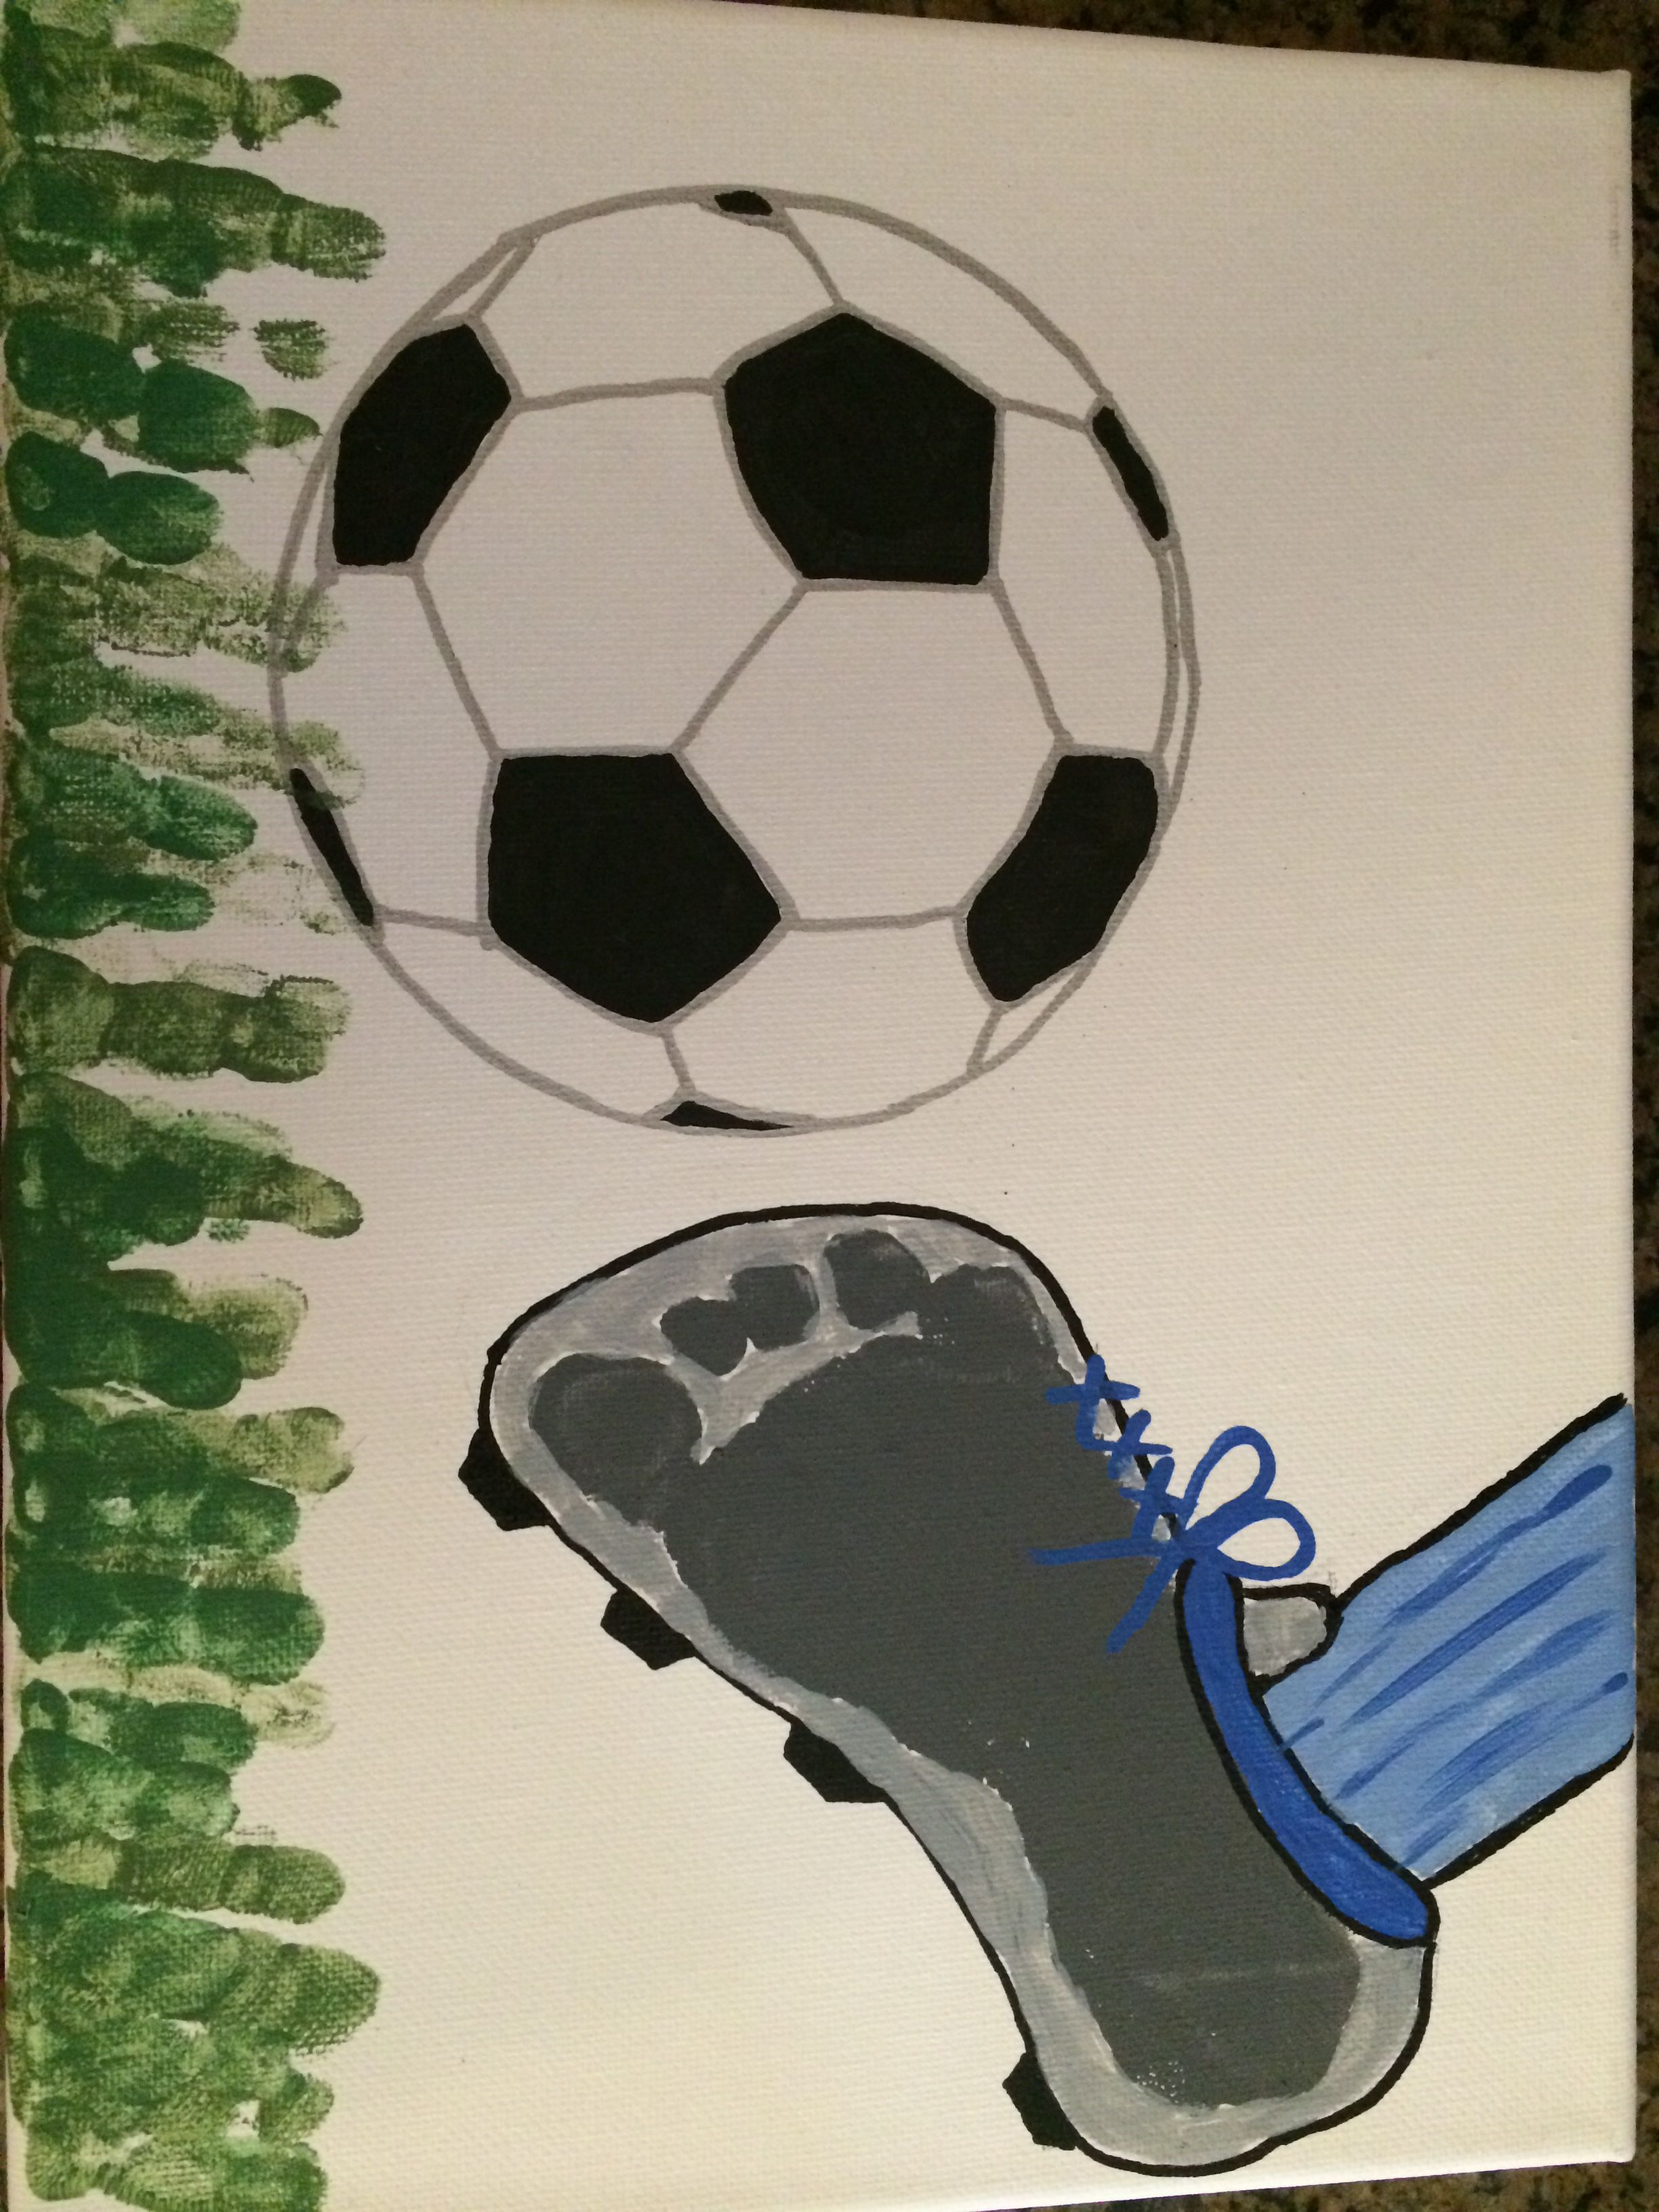 Footprint For Soccer Theme Outlined A Ball Onto Canvas